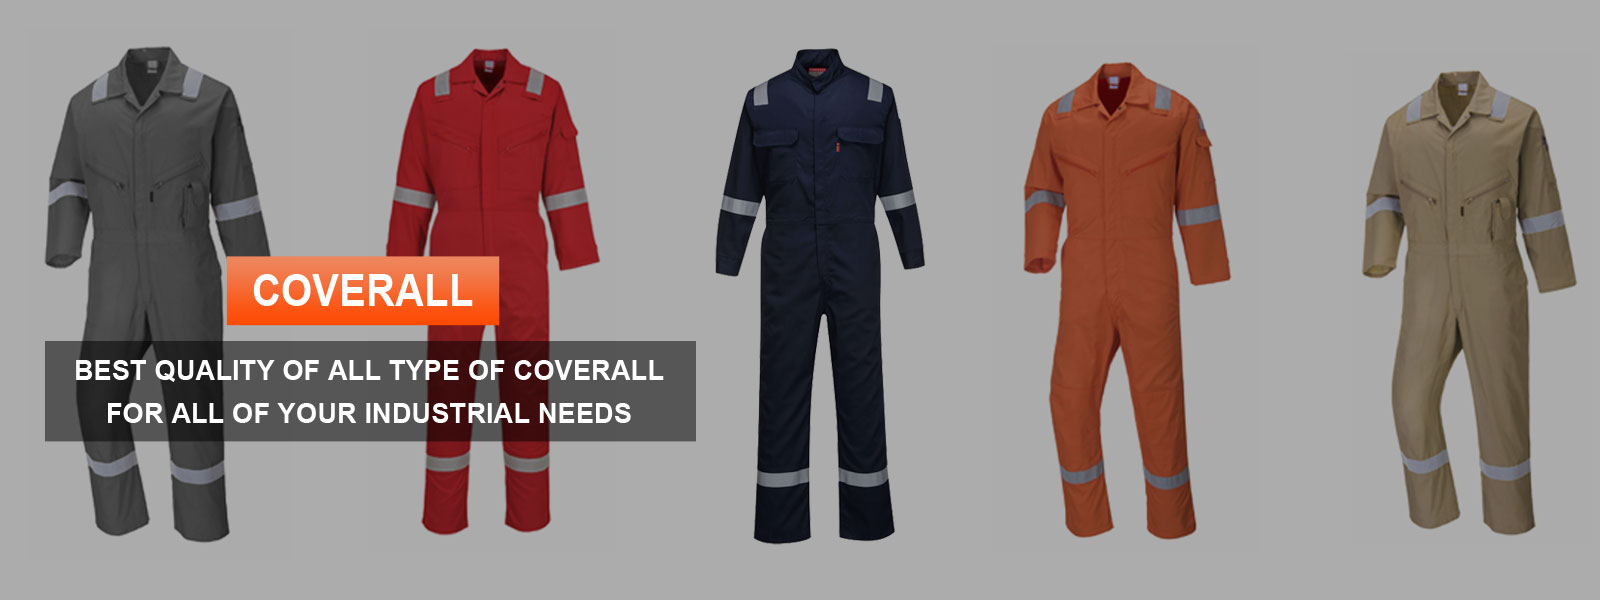 Coverall Manufacturers in Uruguay